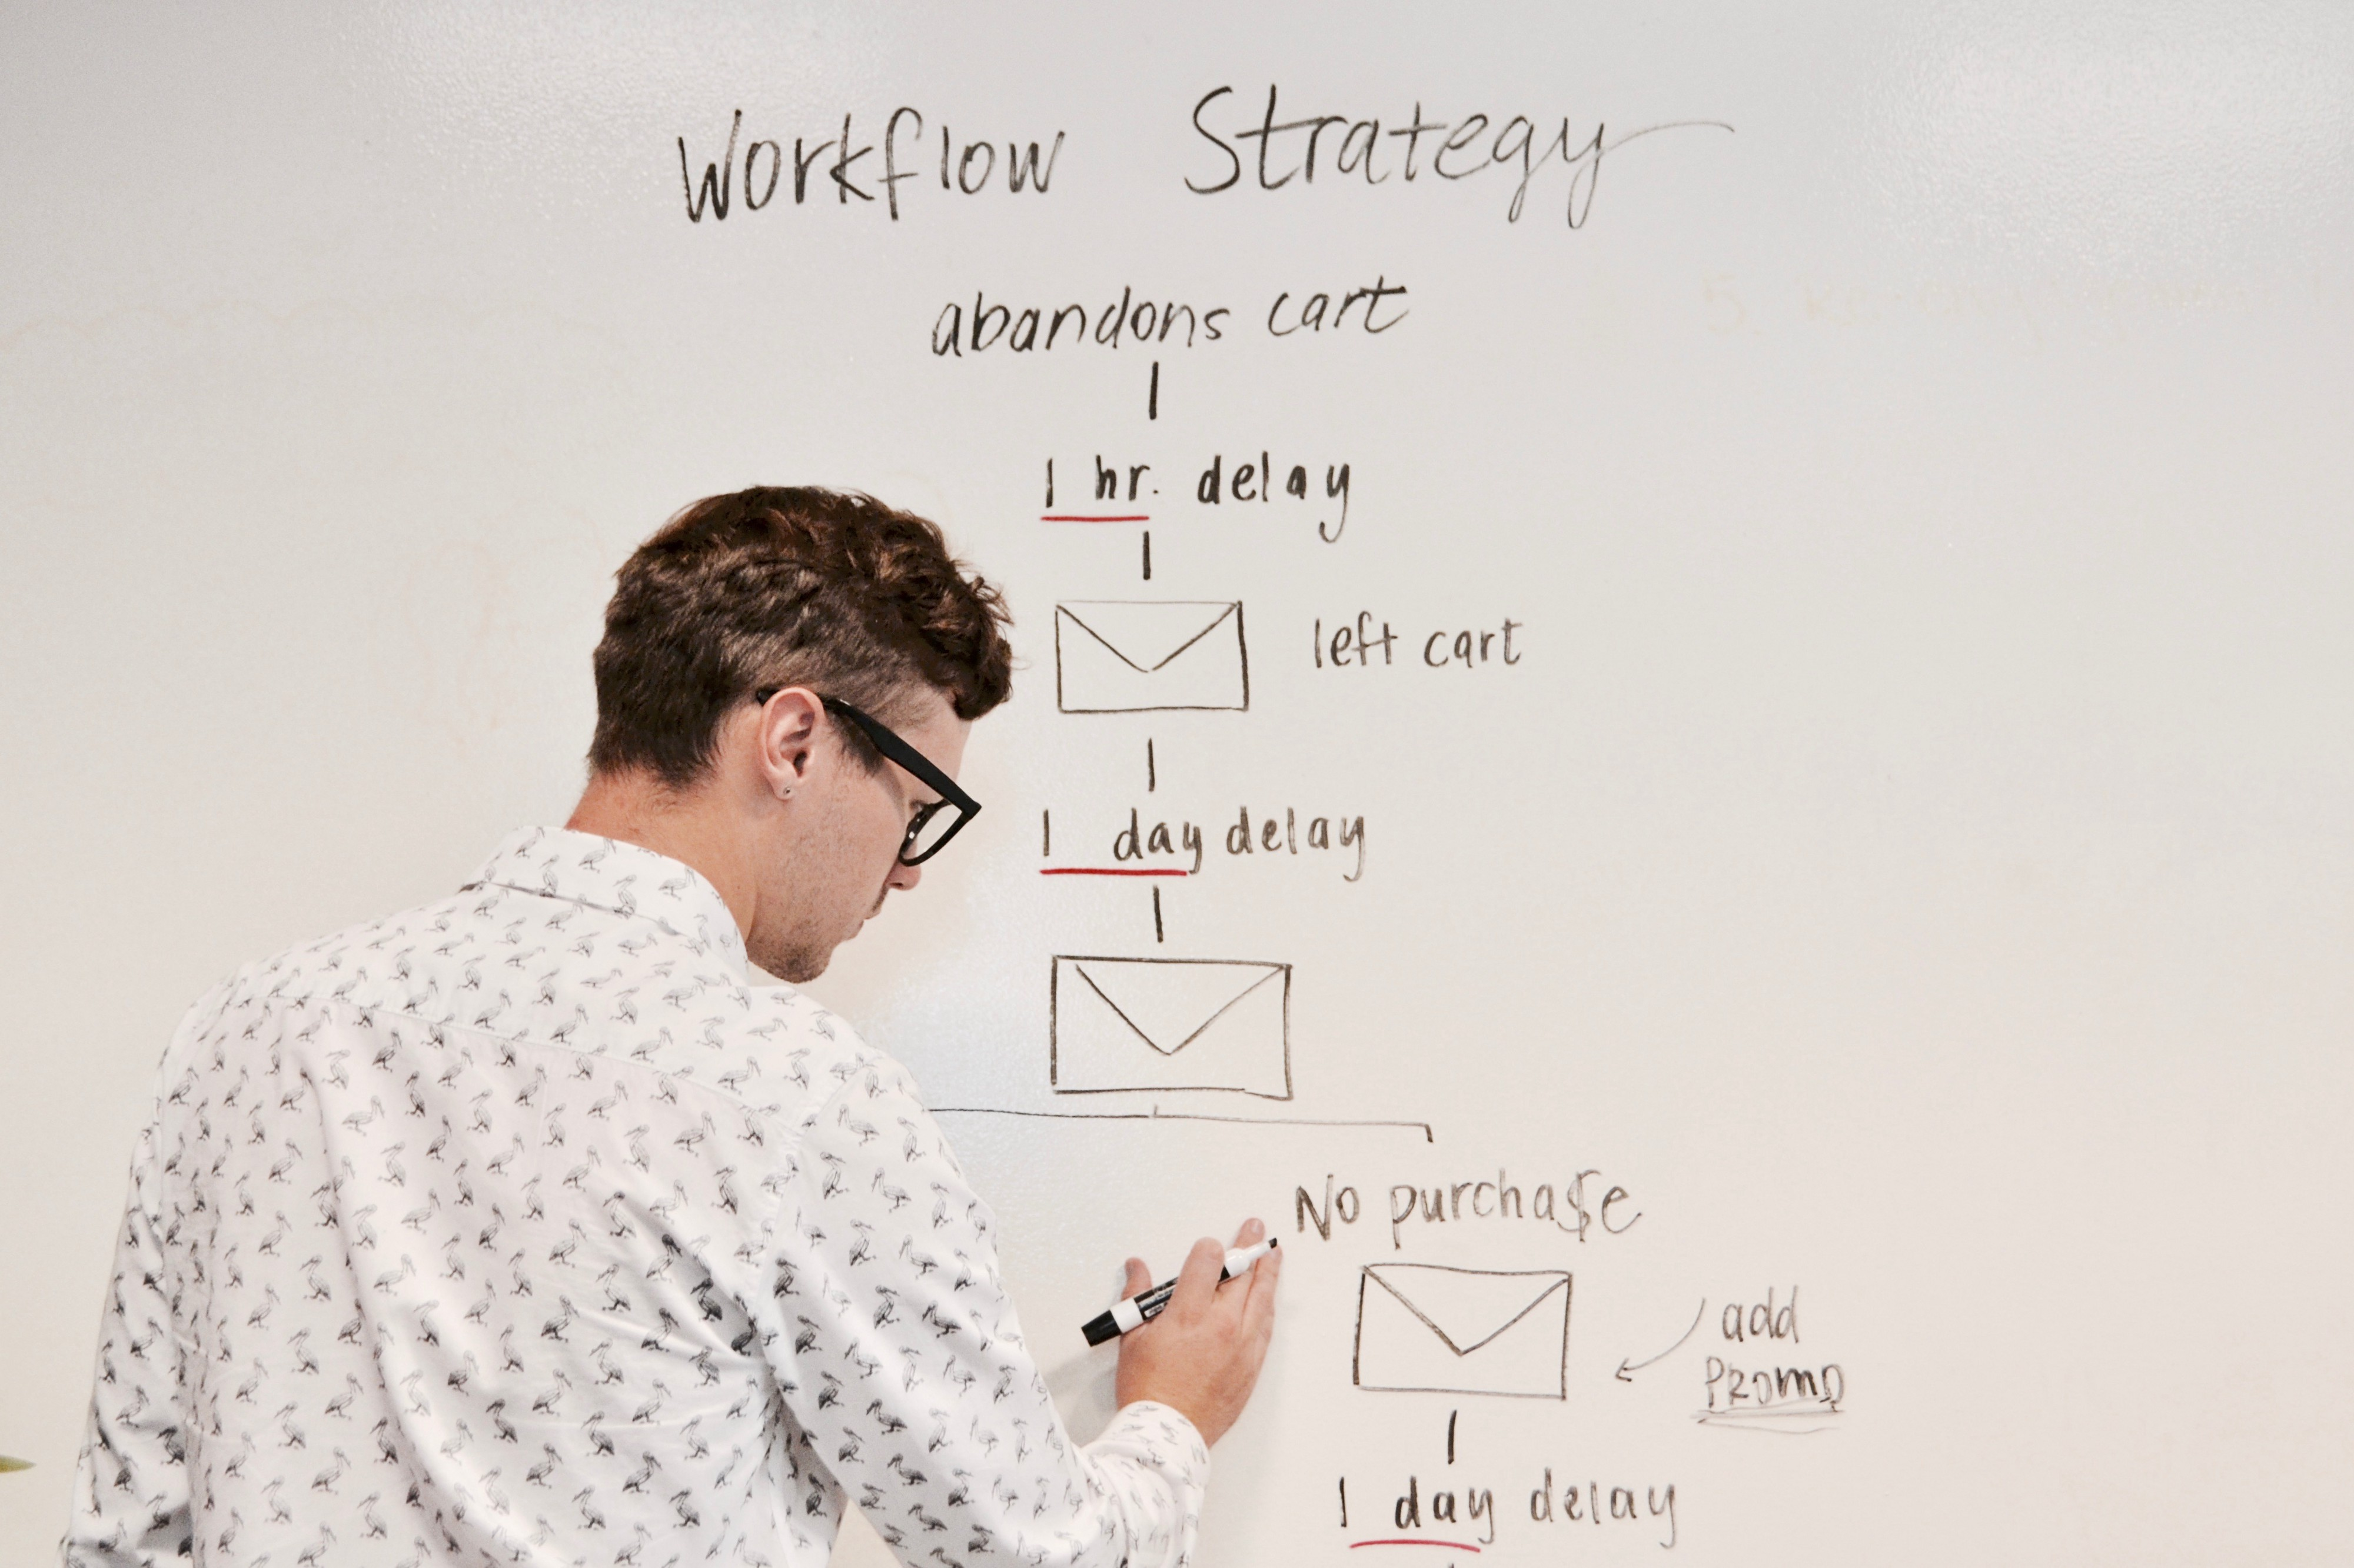 A nerd drawing up a workflow strategy on a whiteboard.